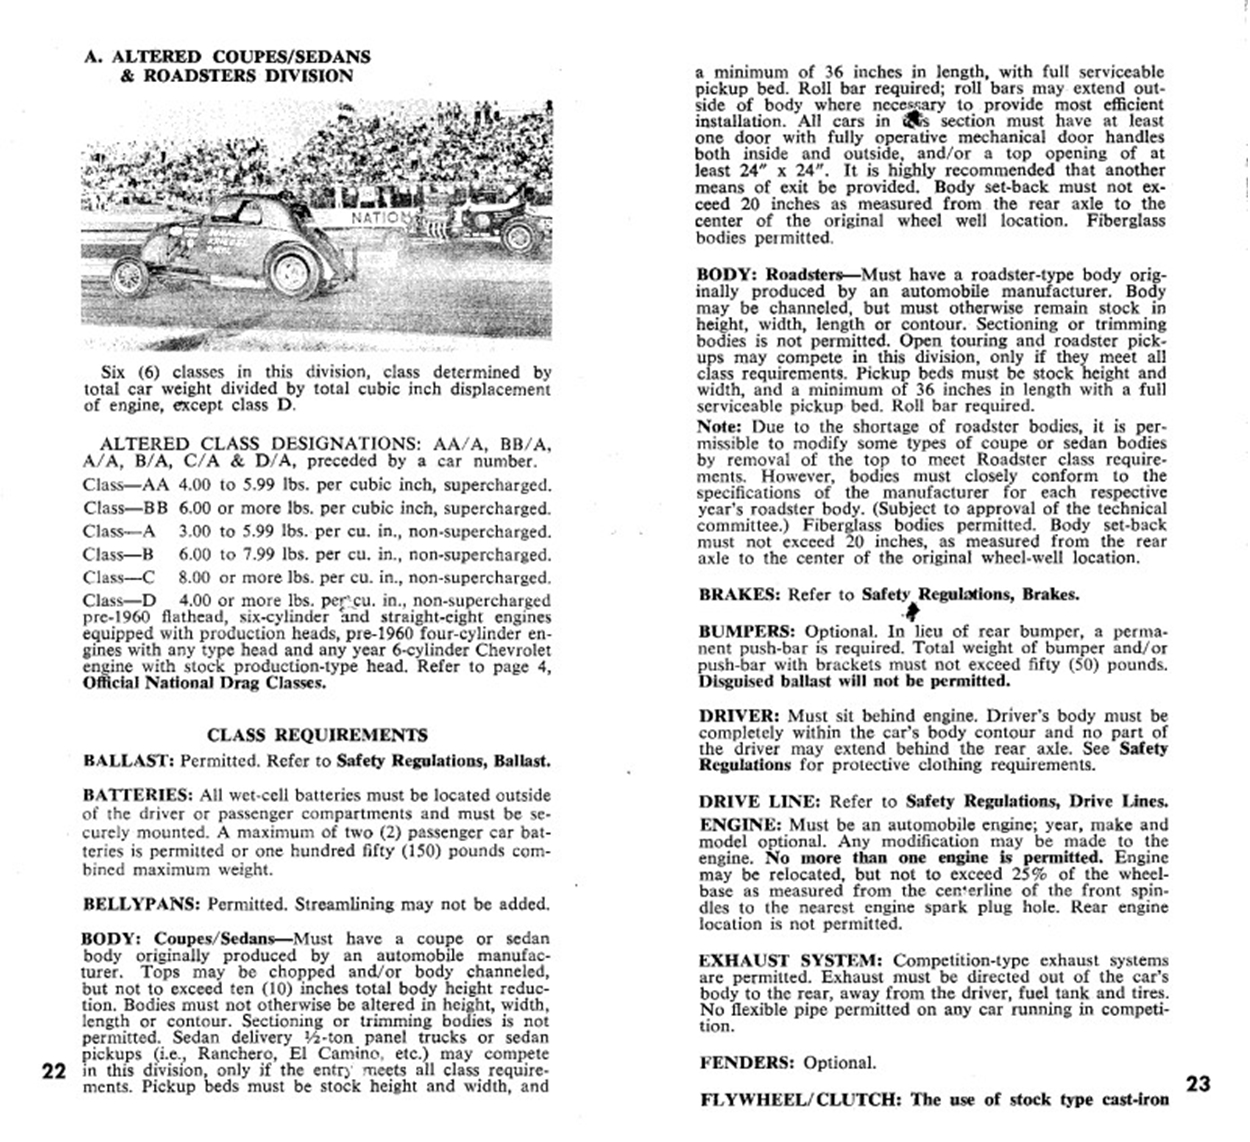 1966 Drag Rules-page13